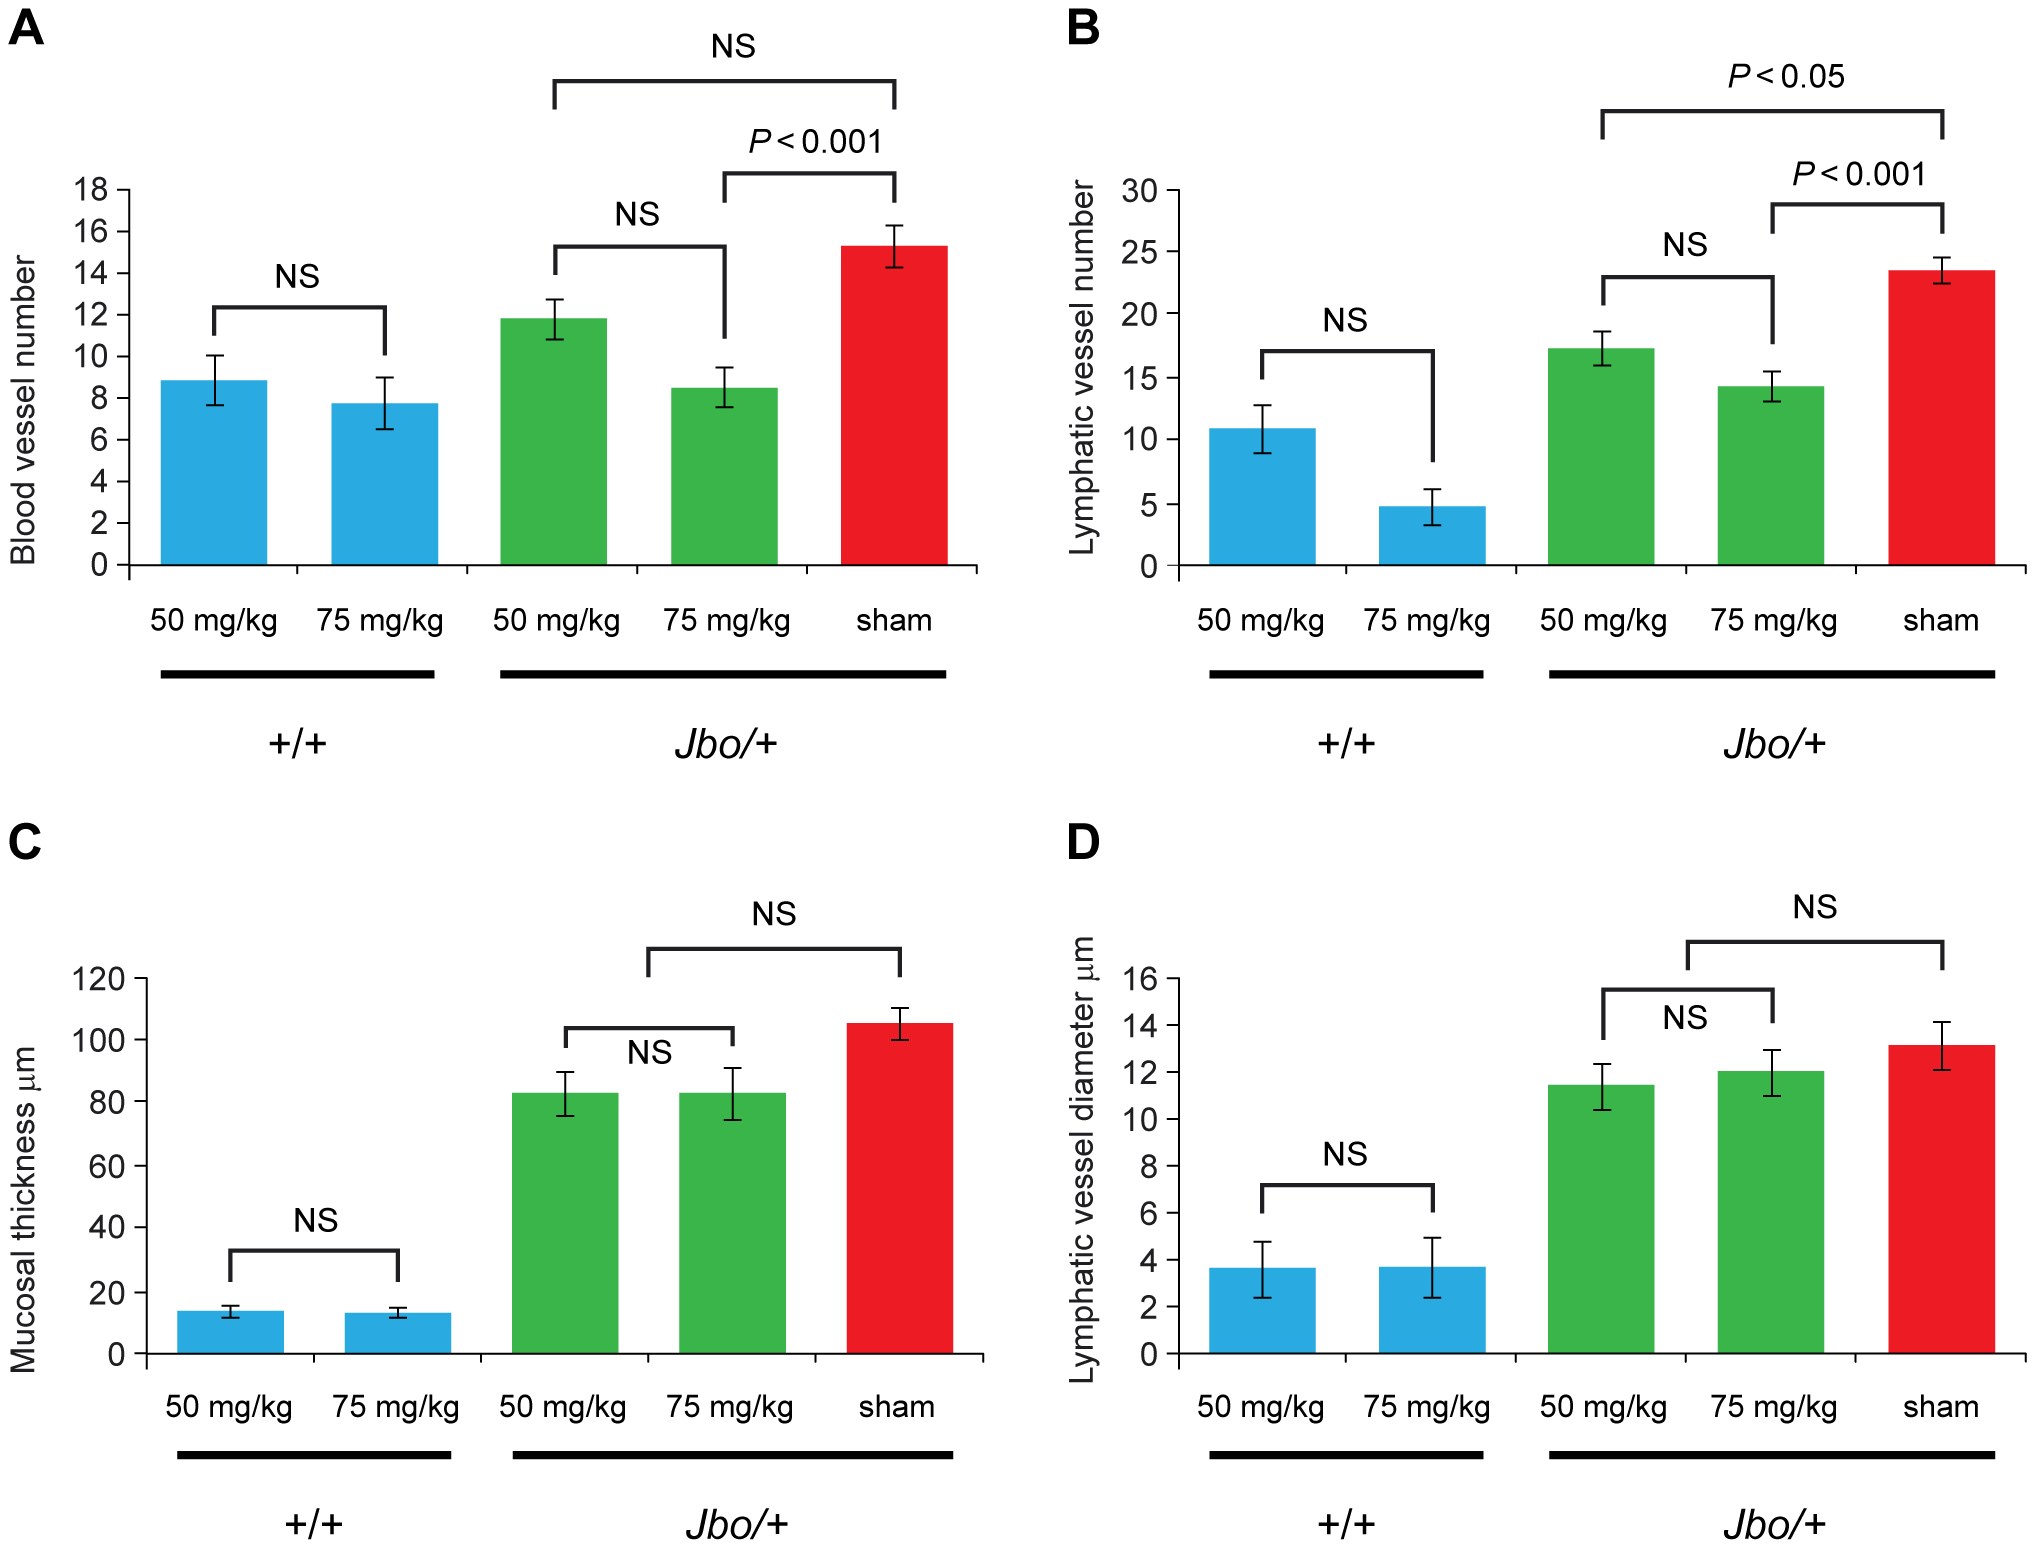 Treatment of <i>Jbo/+</i> mice with PTK787 reduces angiogenesis and lymphangiogenesis in the inflamed middle ear mucosa.